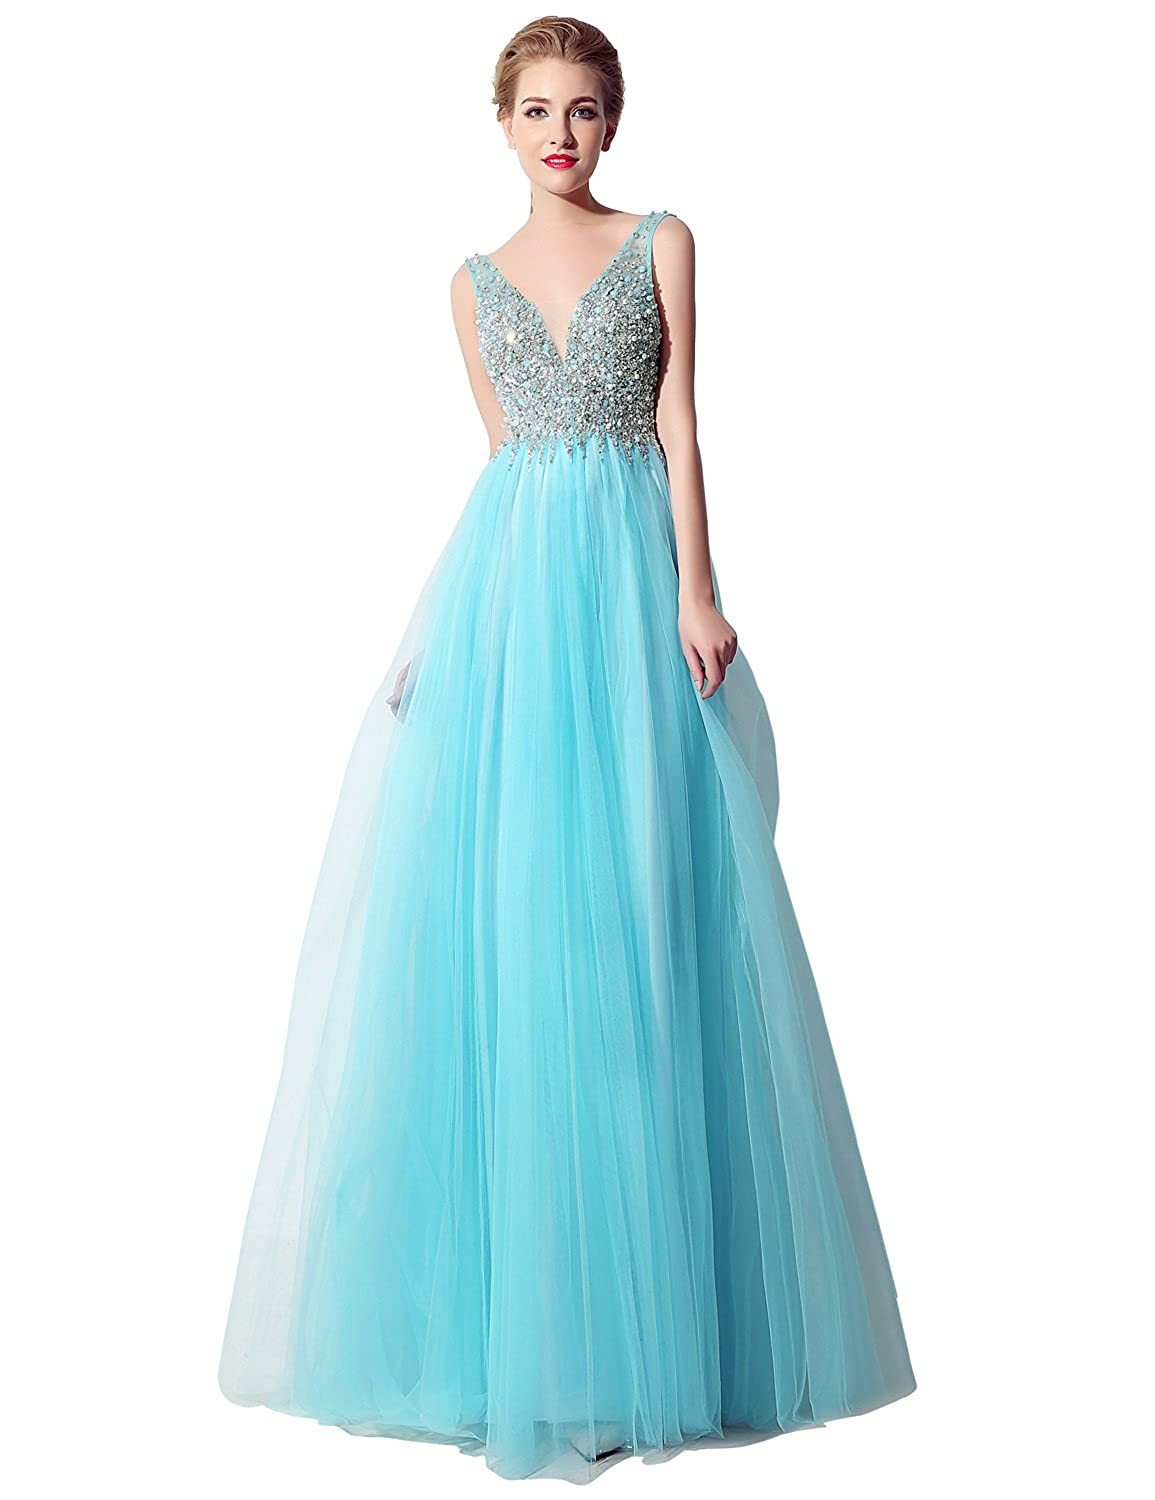 066sky bluee Sarahbridal Women's Tulle HiLow Beading Prom Dresses Evening Homecoming Cocktail Gowns